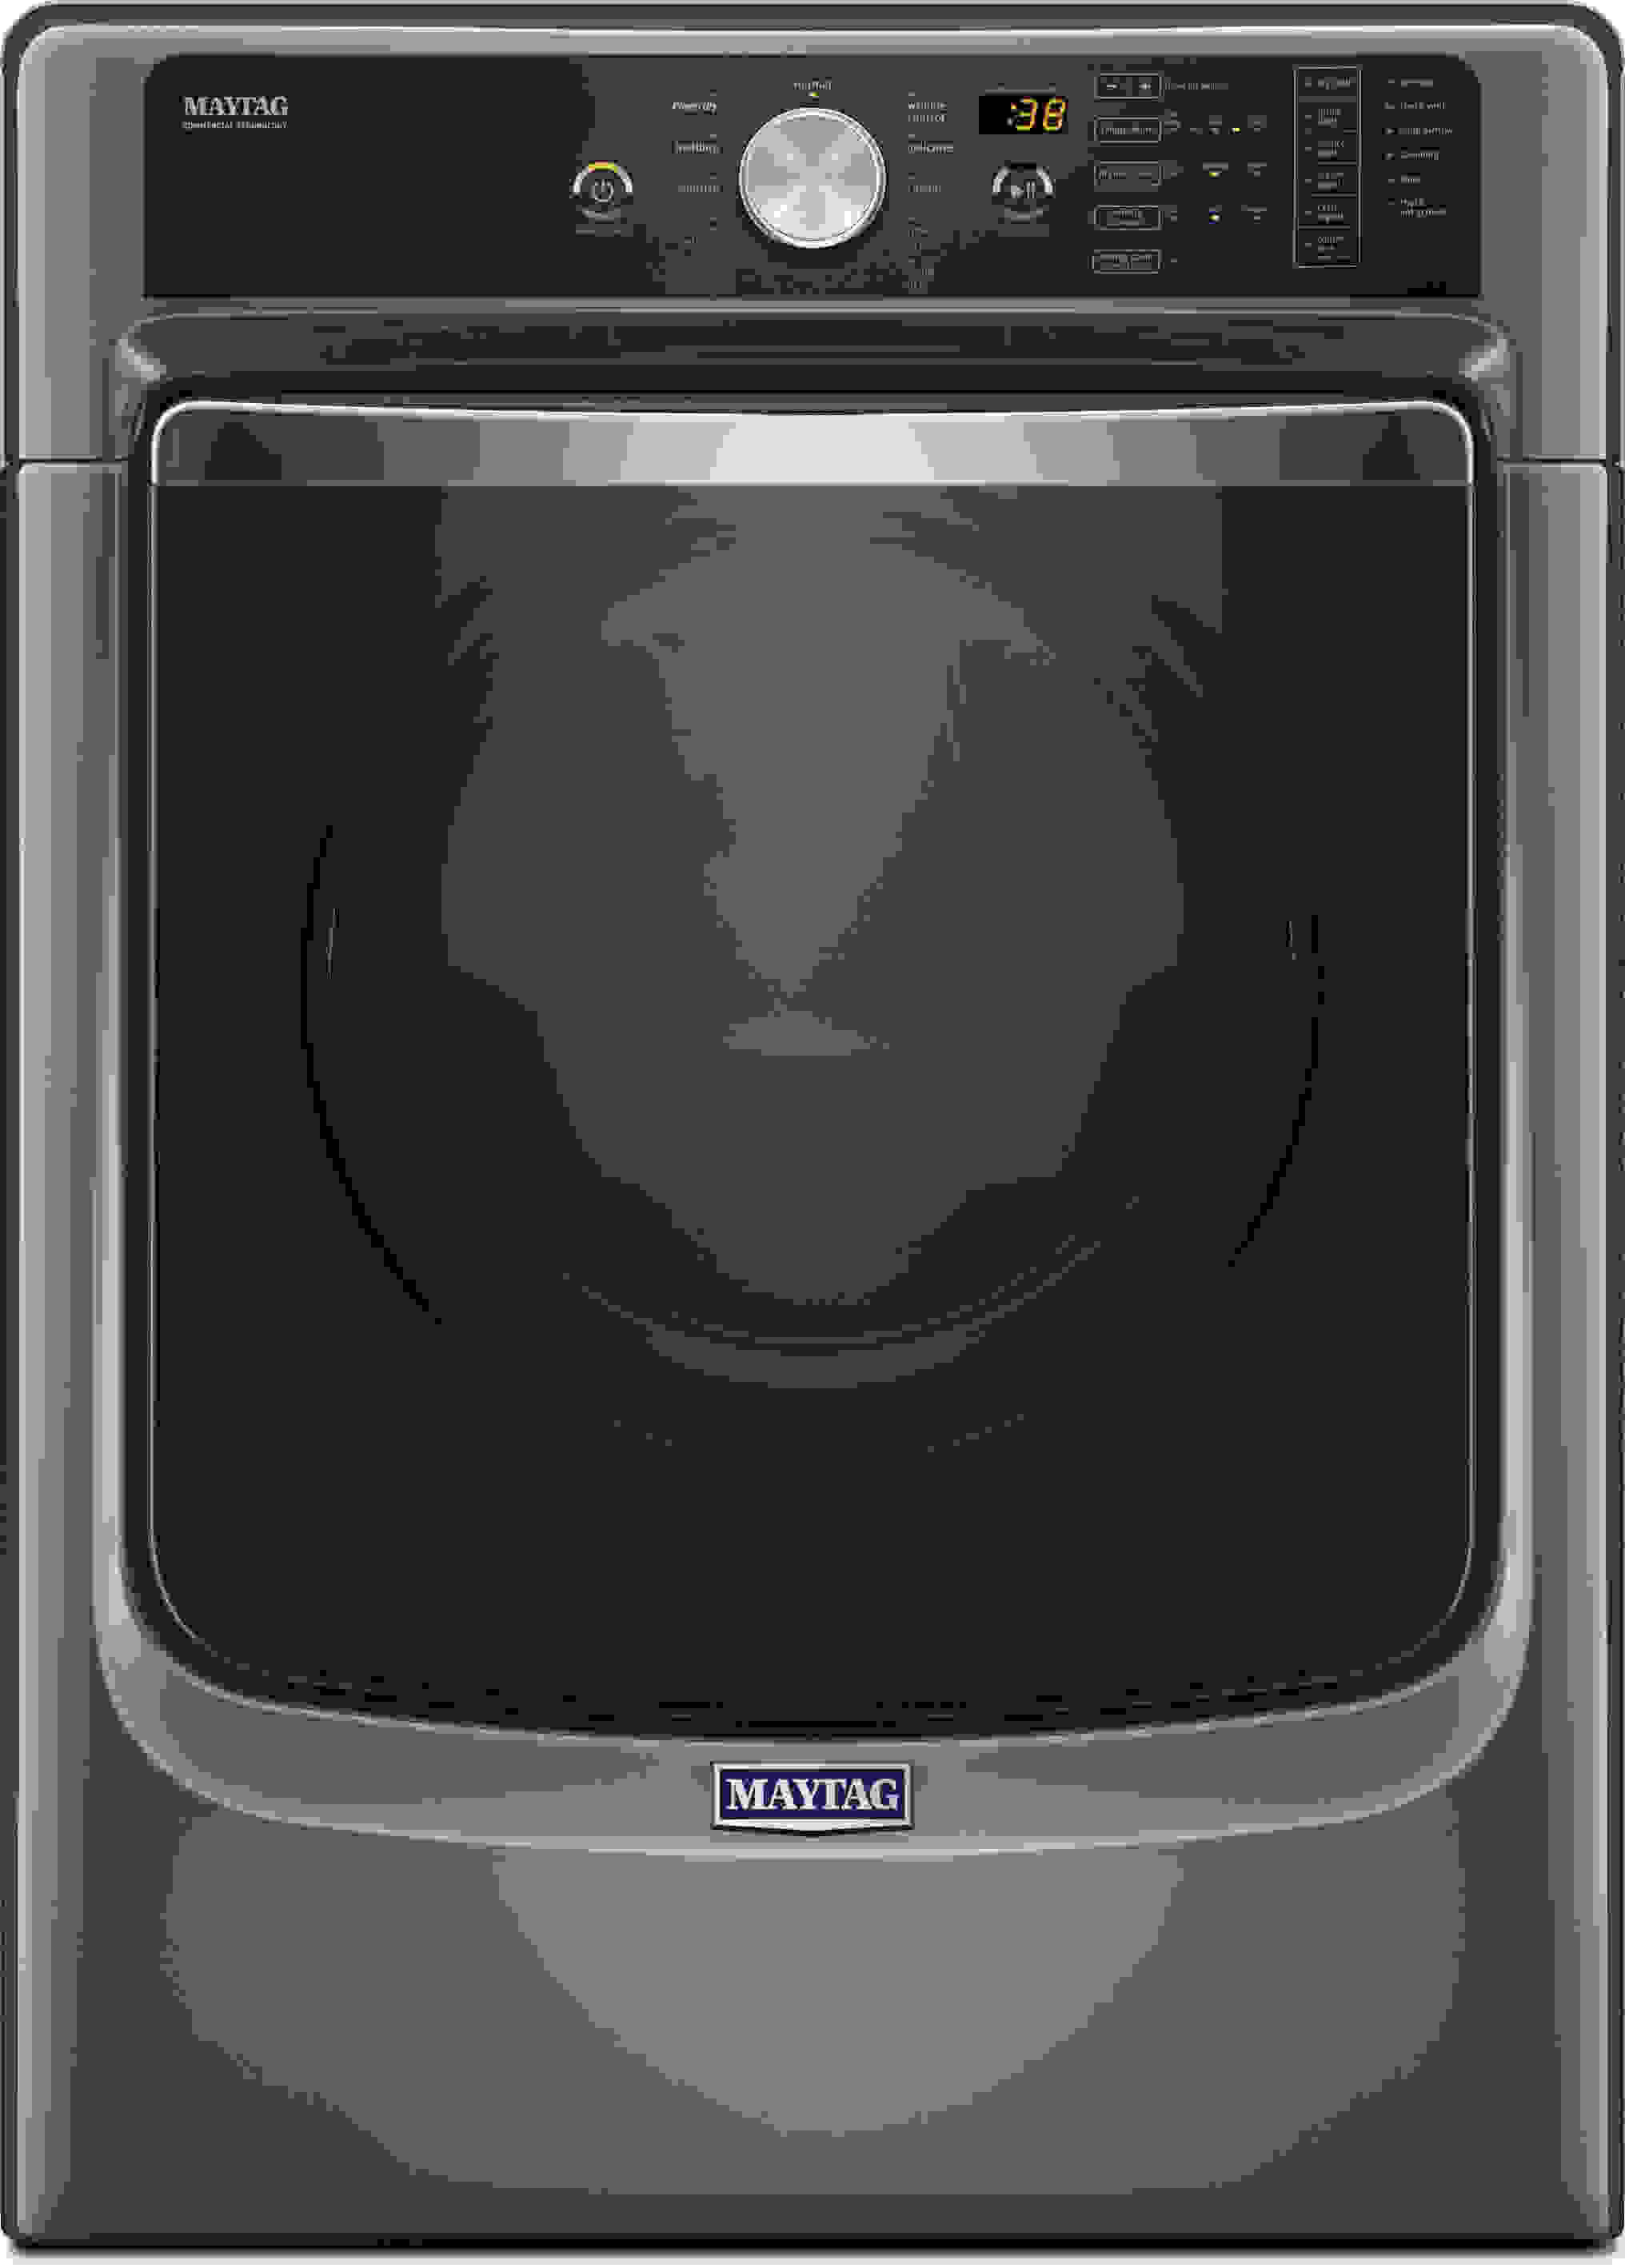 The 8200 series features Maytag's metallic slate finish... which is basically gray.